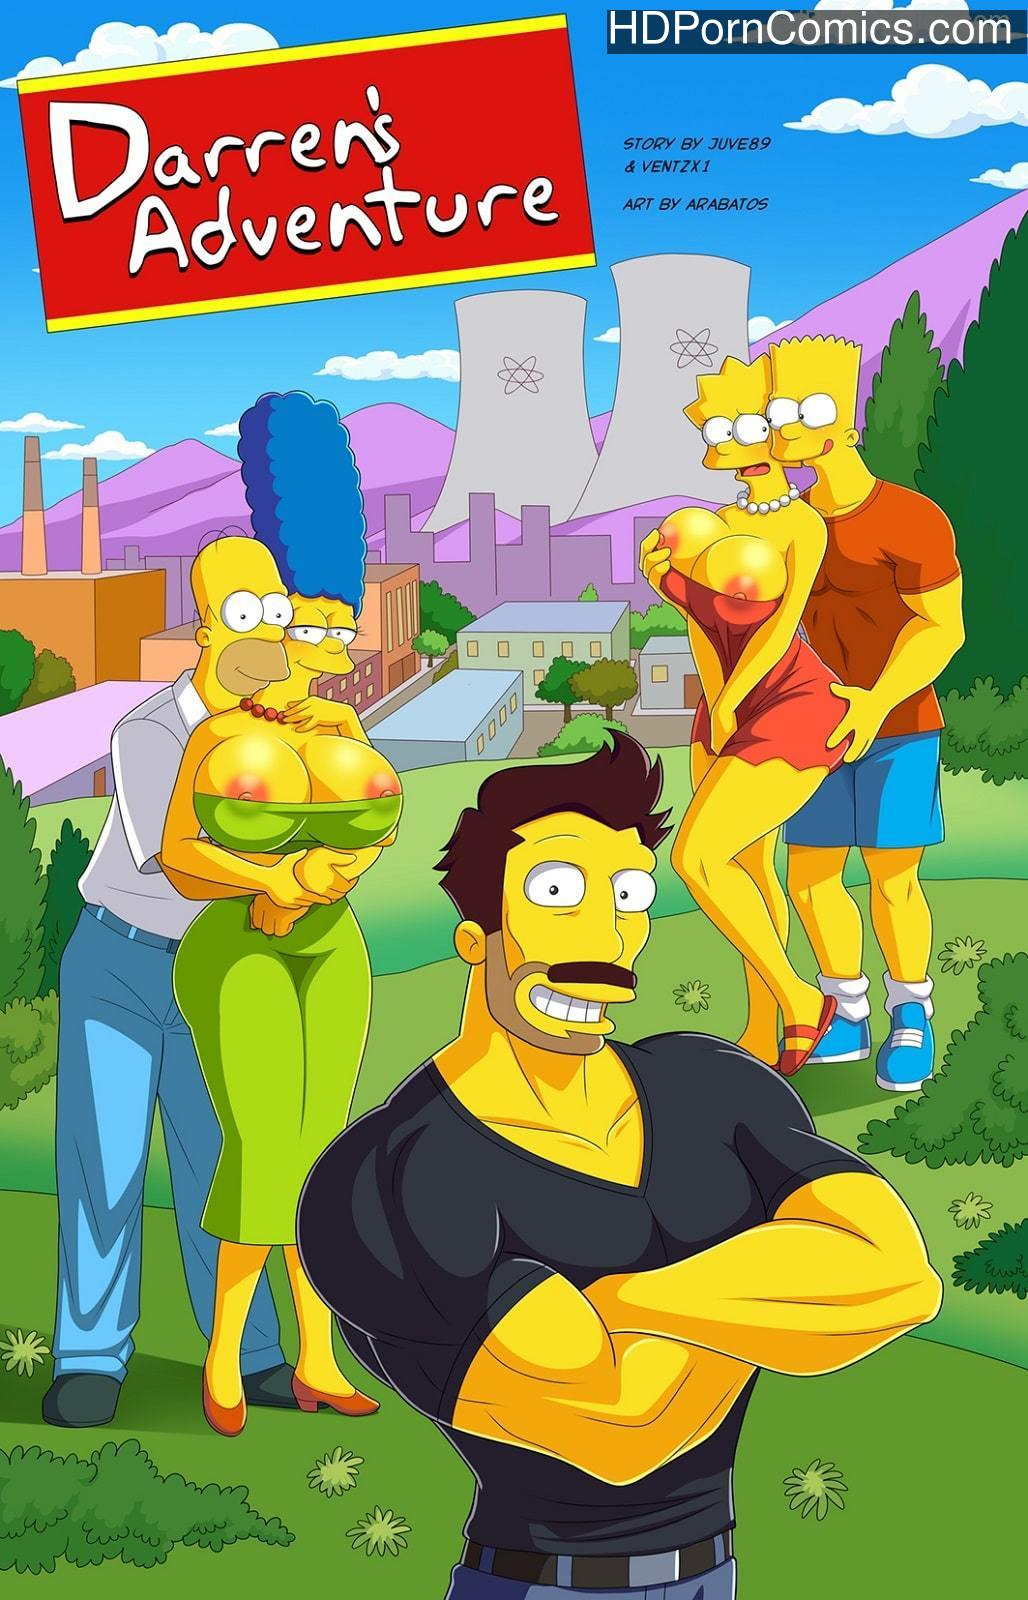 Arabatos – Darren's Adventure Simpsons1 free sex comic